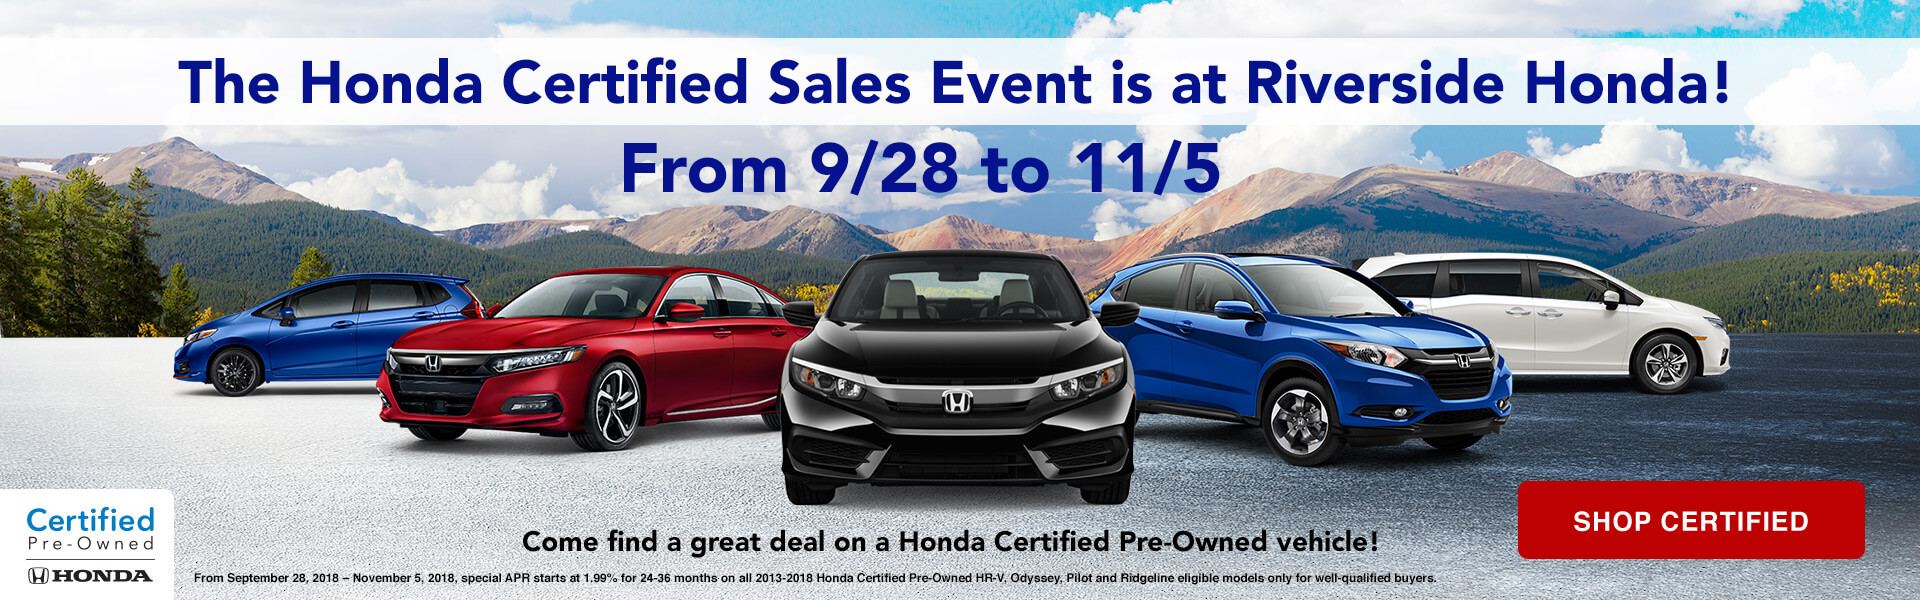 33 New And Used Cars, Trucks, And SUVs In Stock In Moreno Valley, Corona,  Inland Empire And Riverside, CA   Riverside Honda